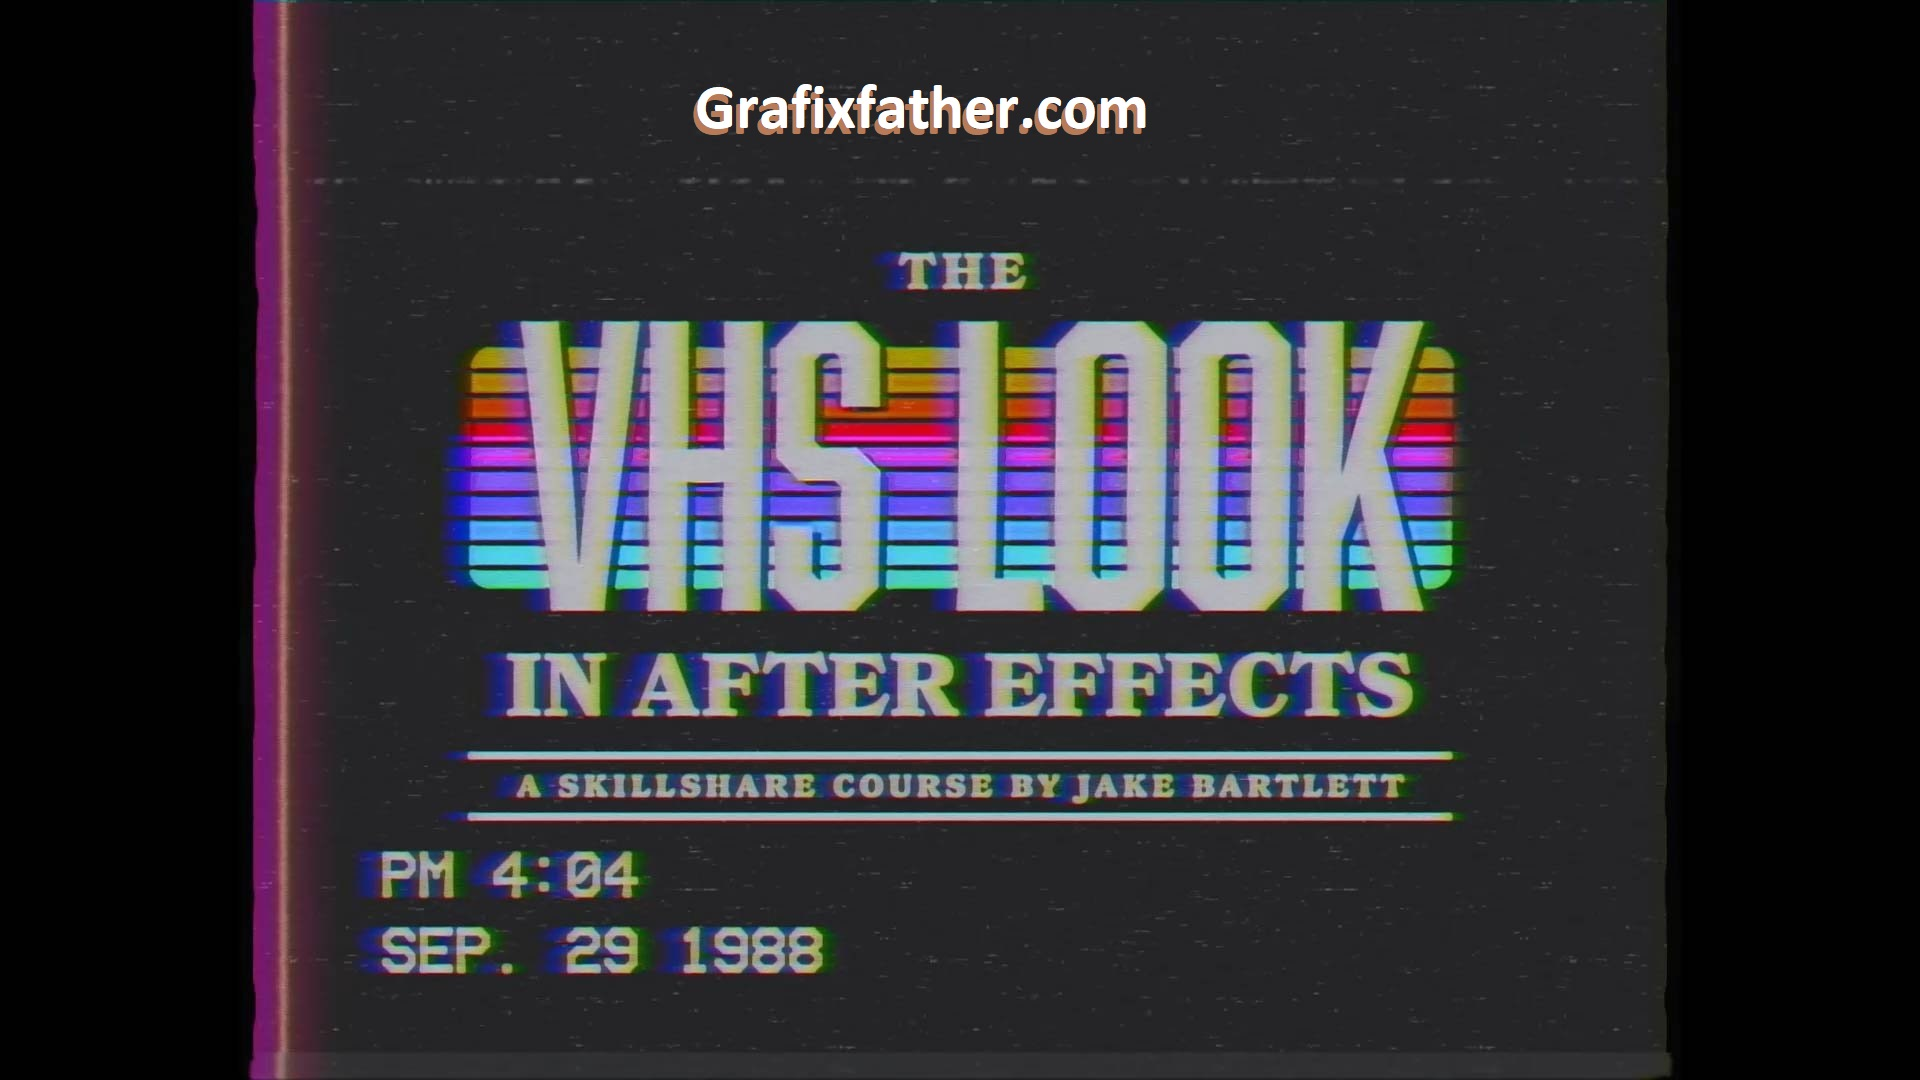 The VHS Look in After Effects